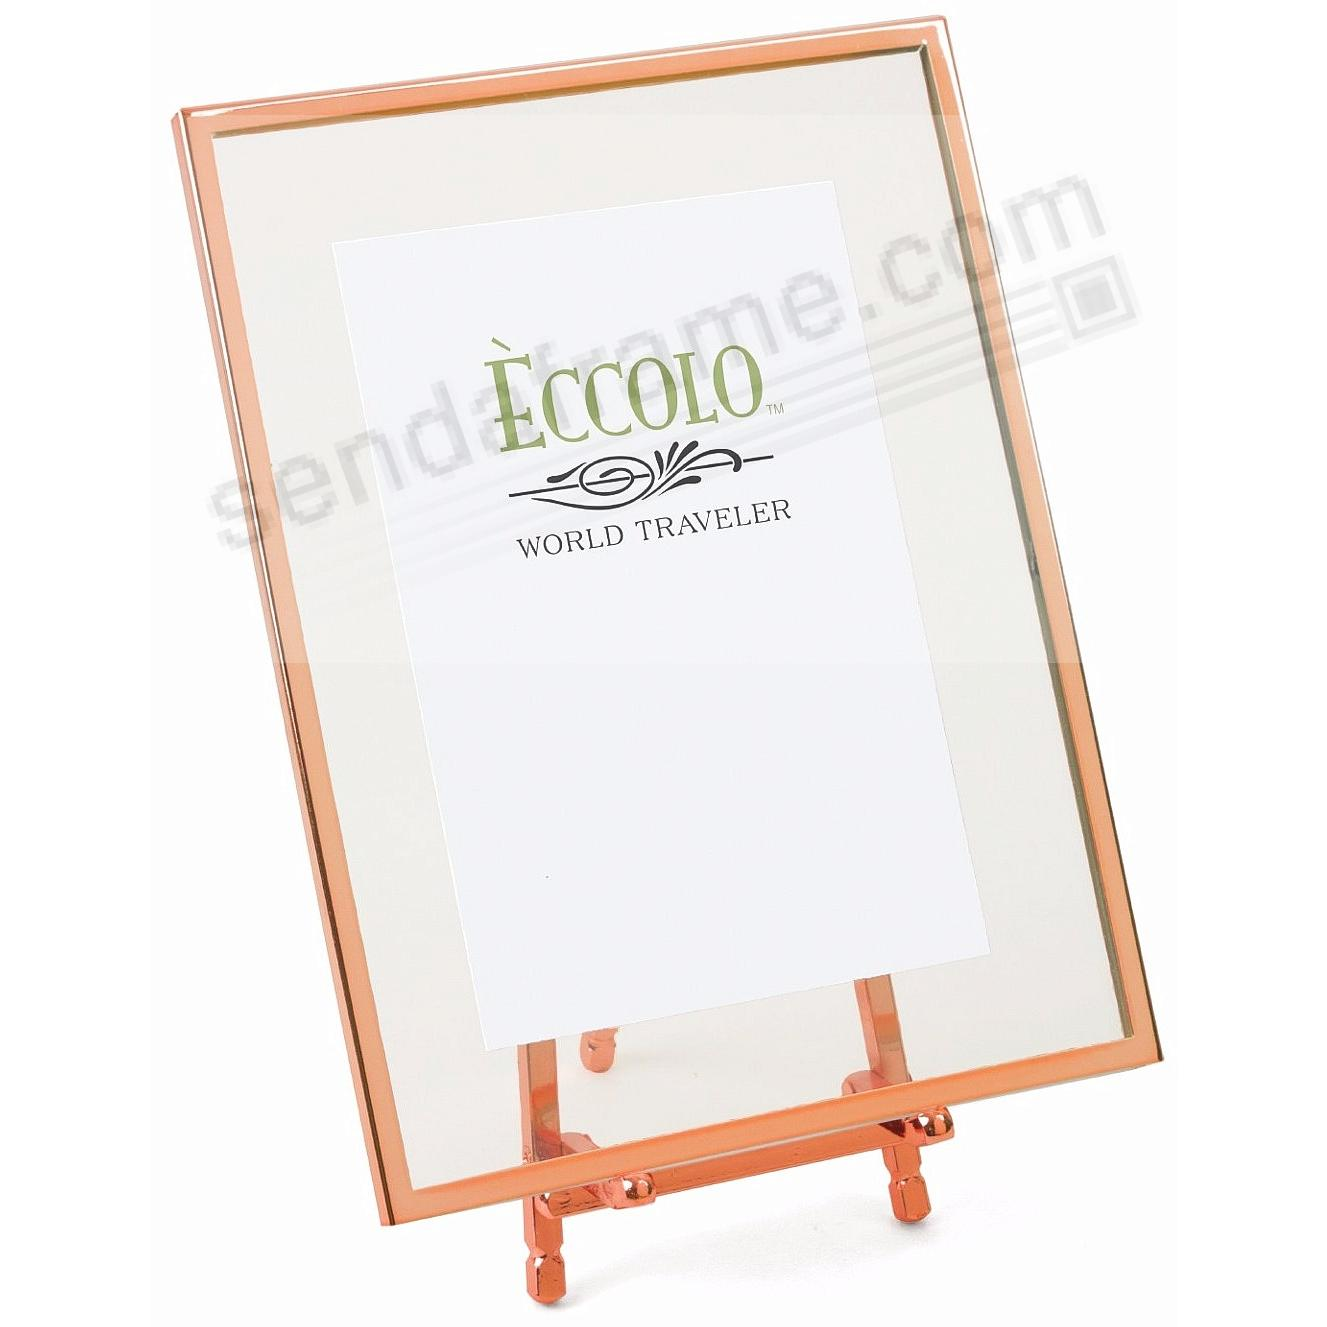 Copper FLOATING GLASS EASEL 4x6 by Eccolo® - Picture Frames, Photo ...